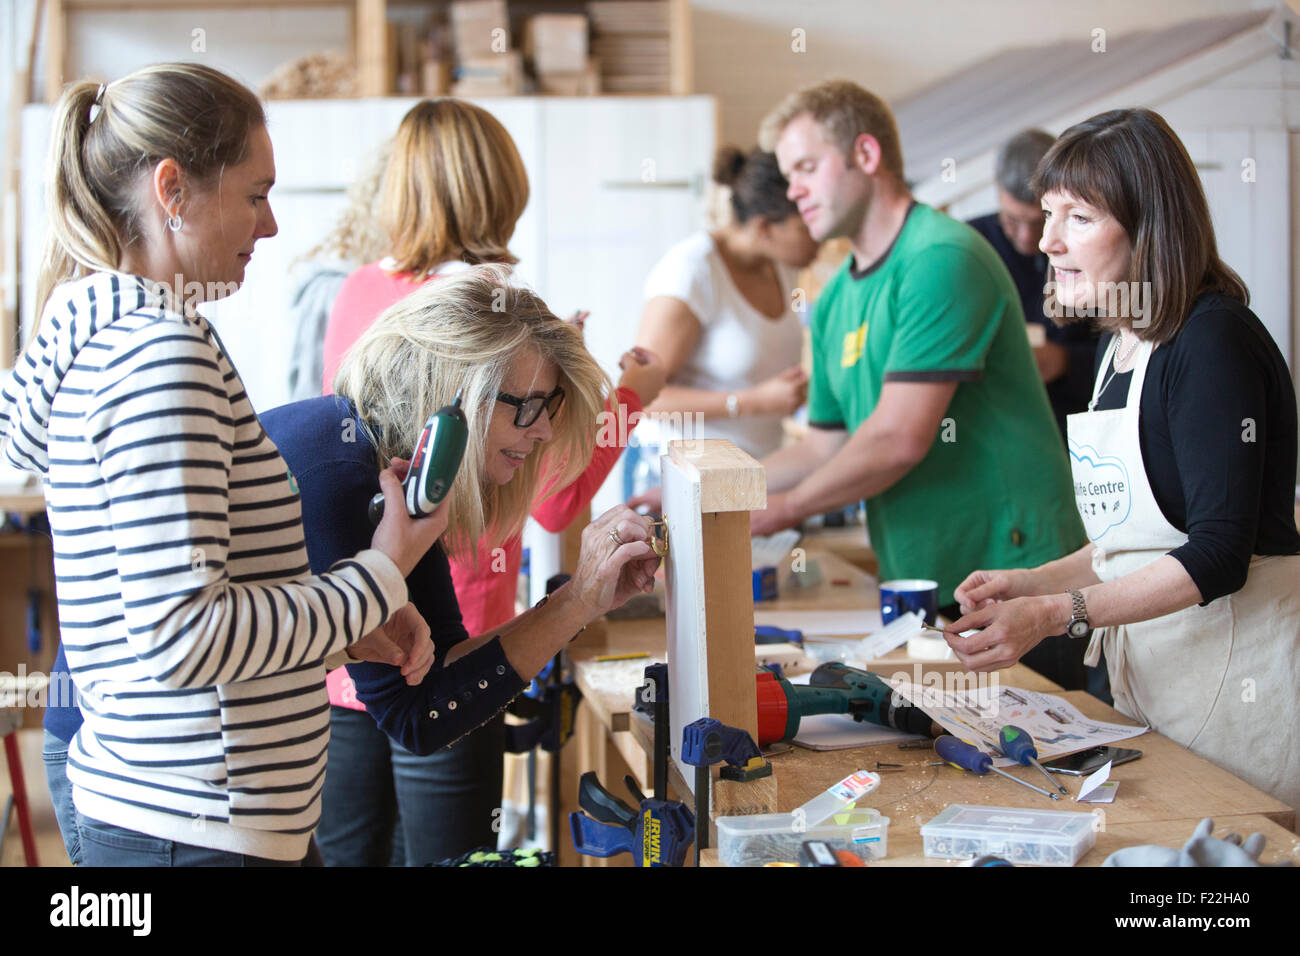 Middle aged people attending a Do-It-Yourself course learning basic carpentry skills, UK - Stock Image